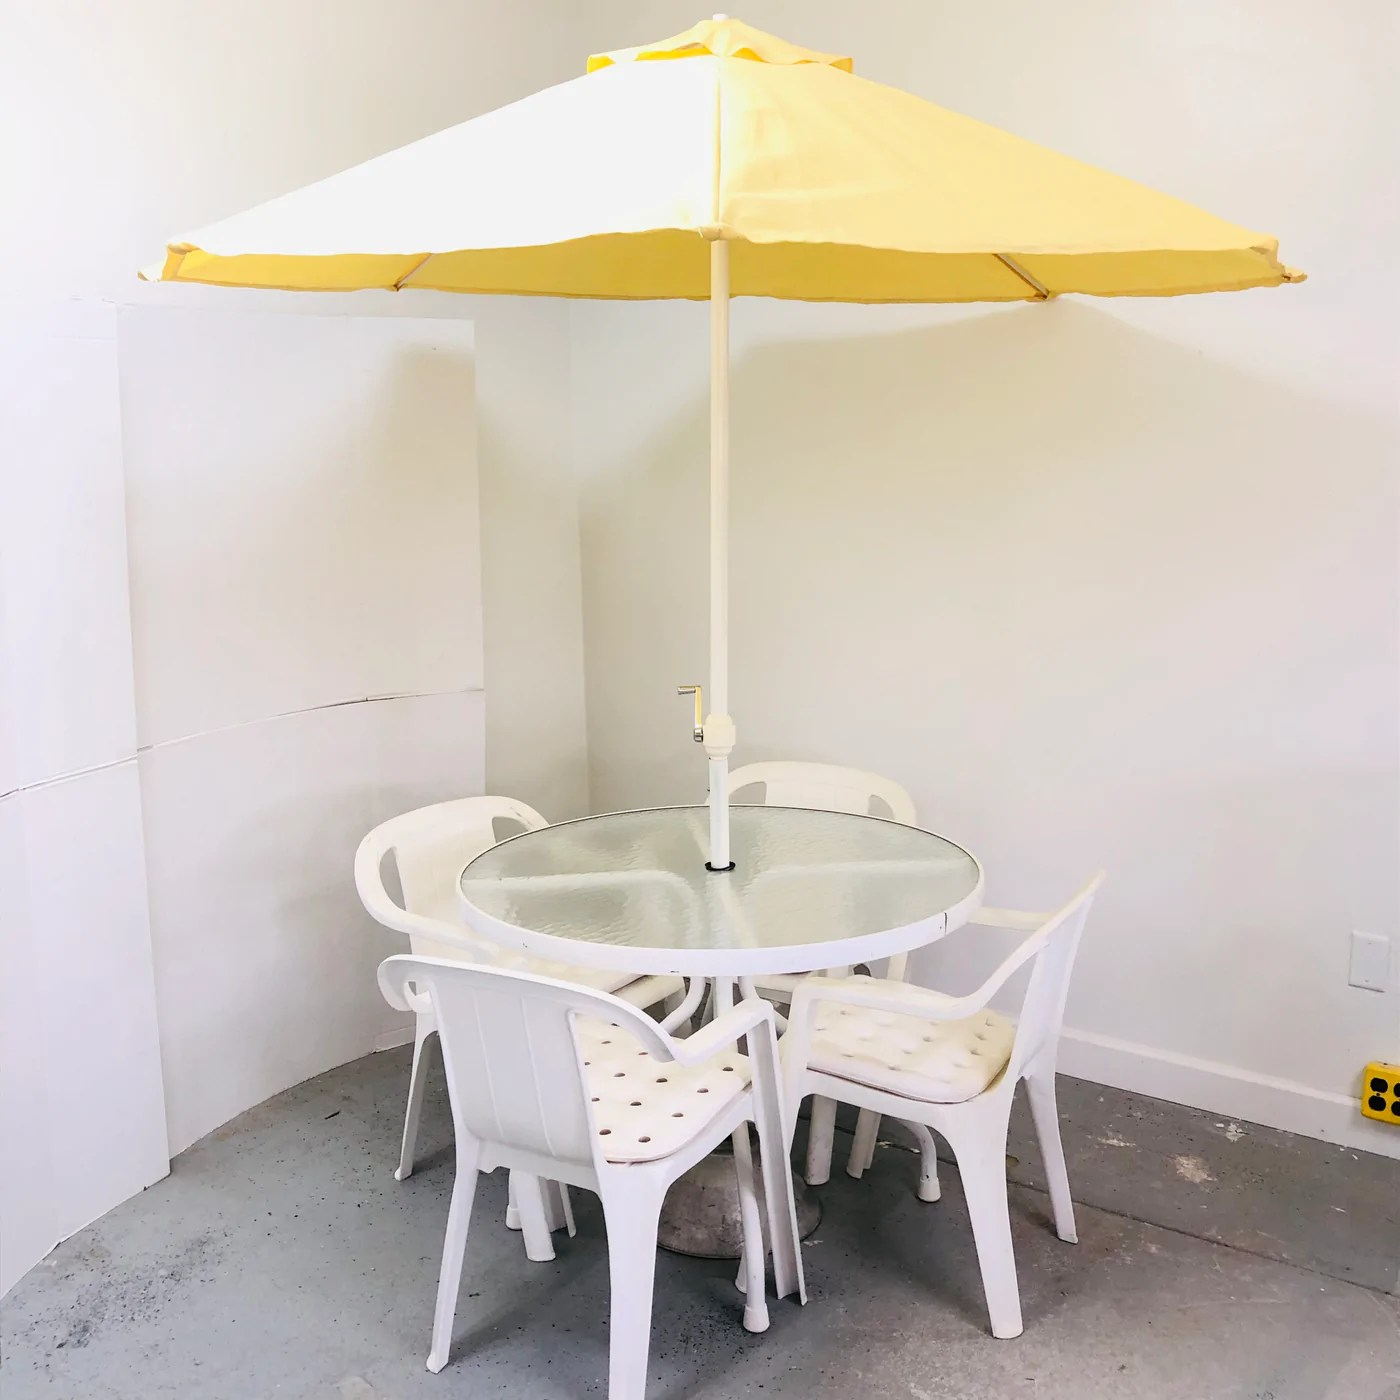 6 pc white 40 table chairs w yellow